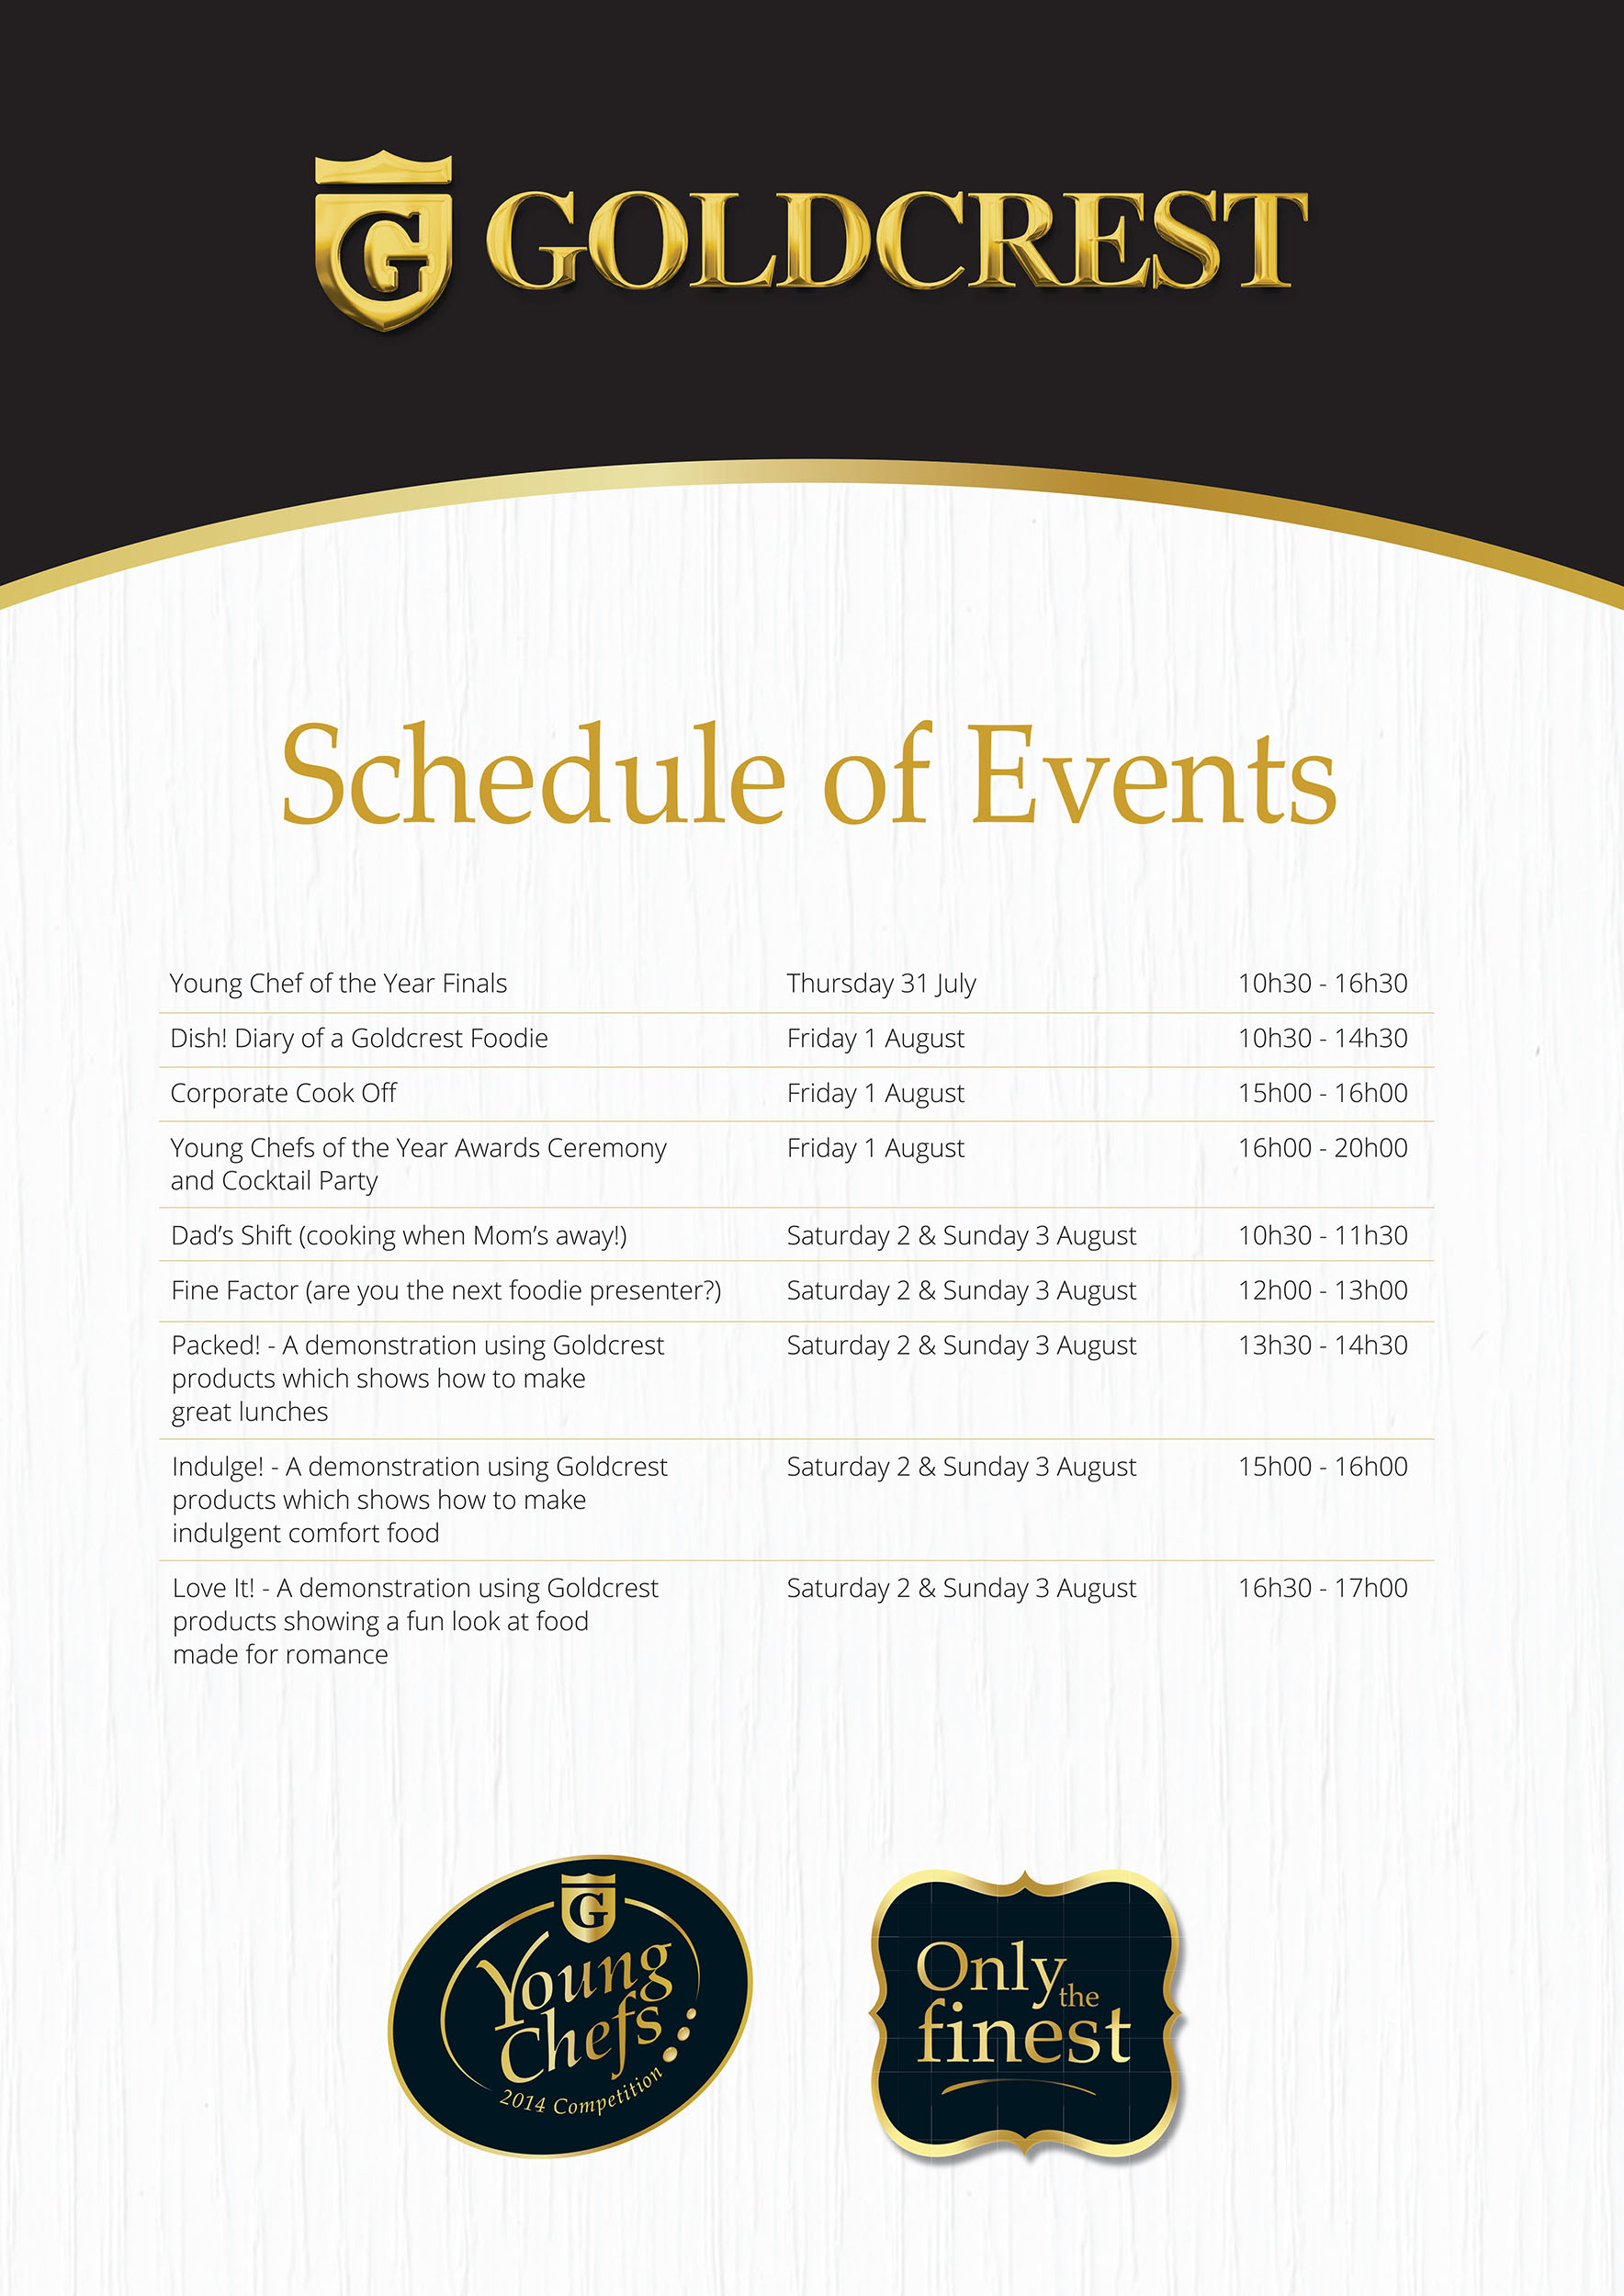 18151 Good Food & Wine Show Schedule of Events R Paths